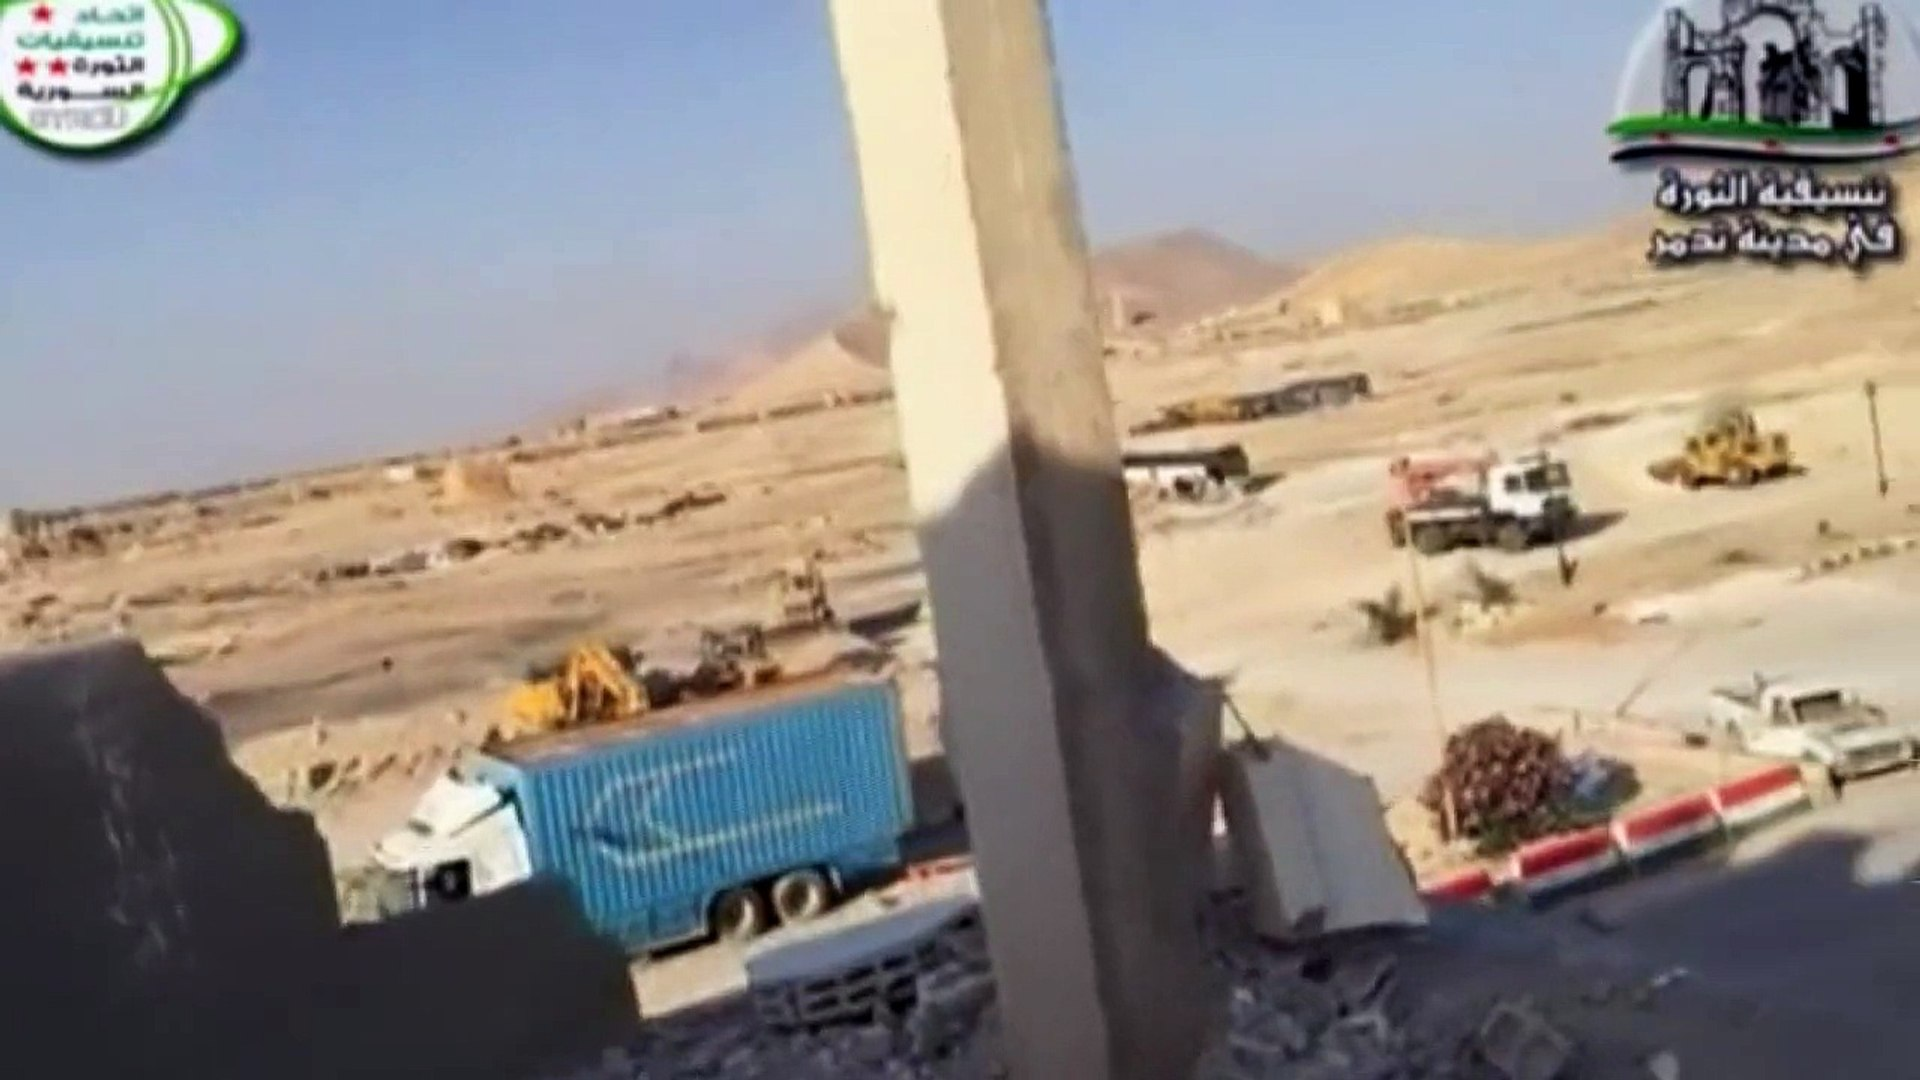 Amateur video purports to show result of Syrian air strike